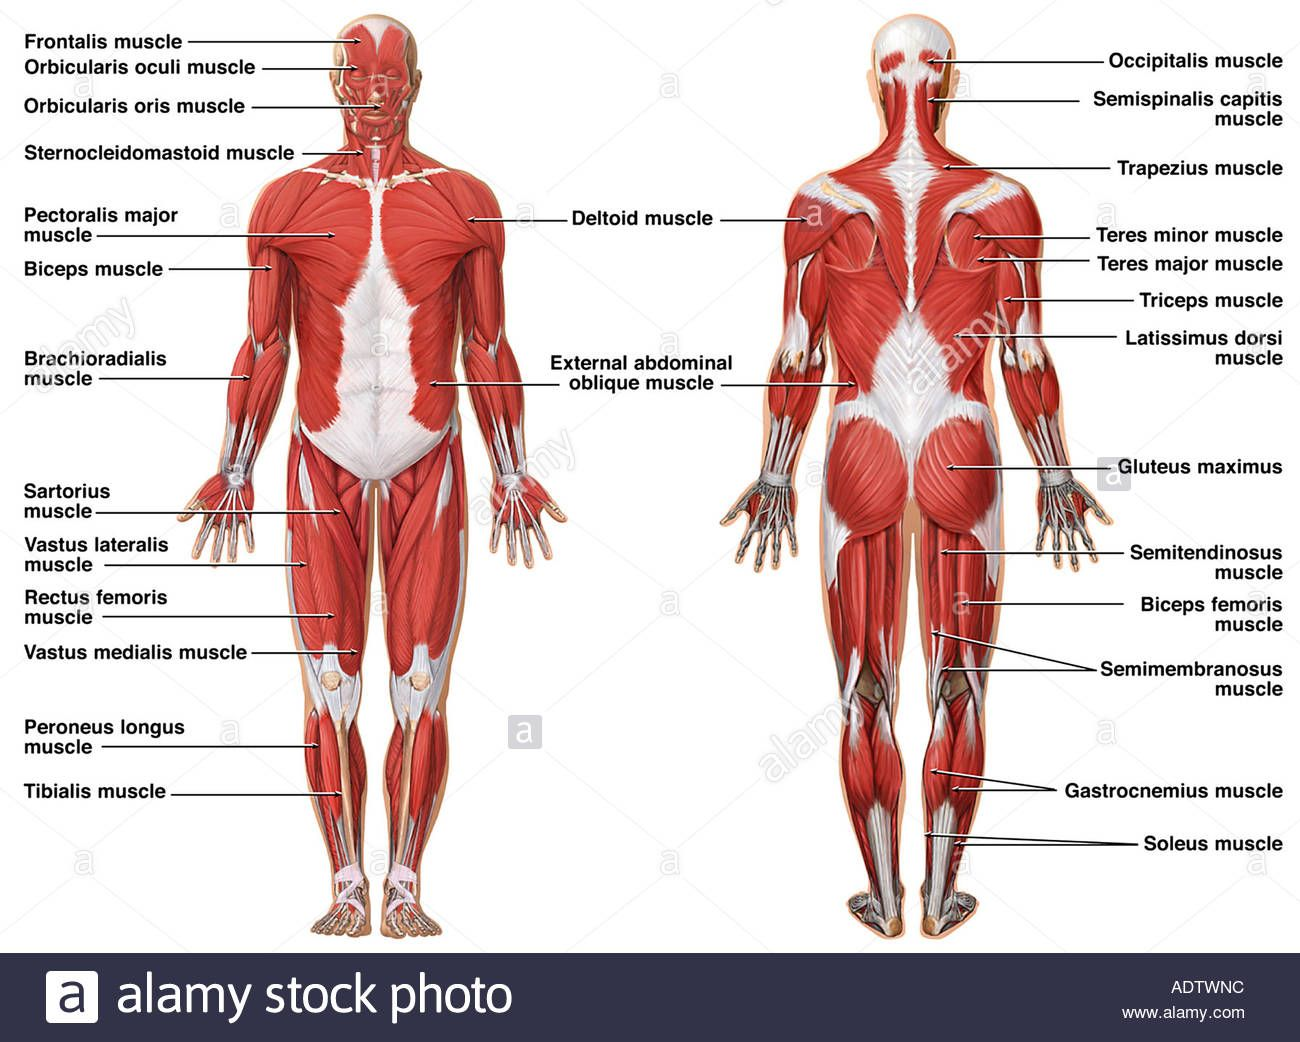 Muscular System Pictures Human Anatomy Drawing Muscular System